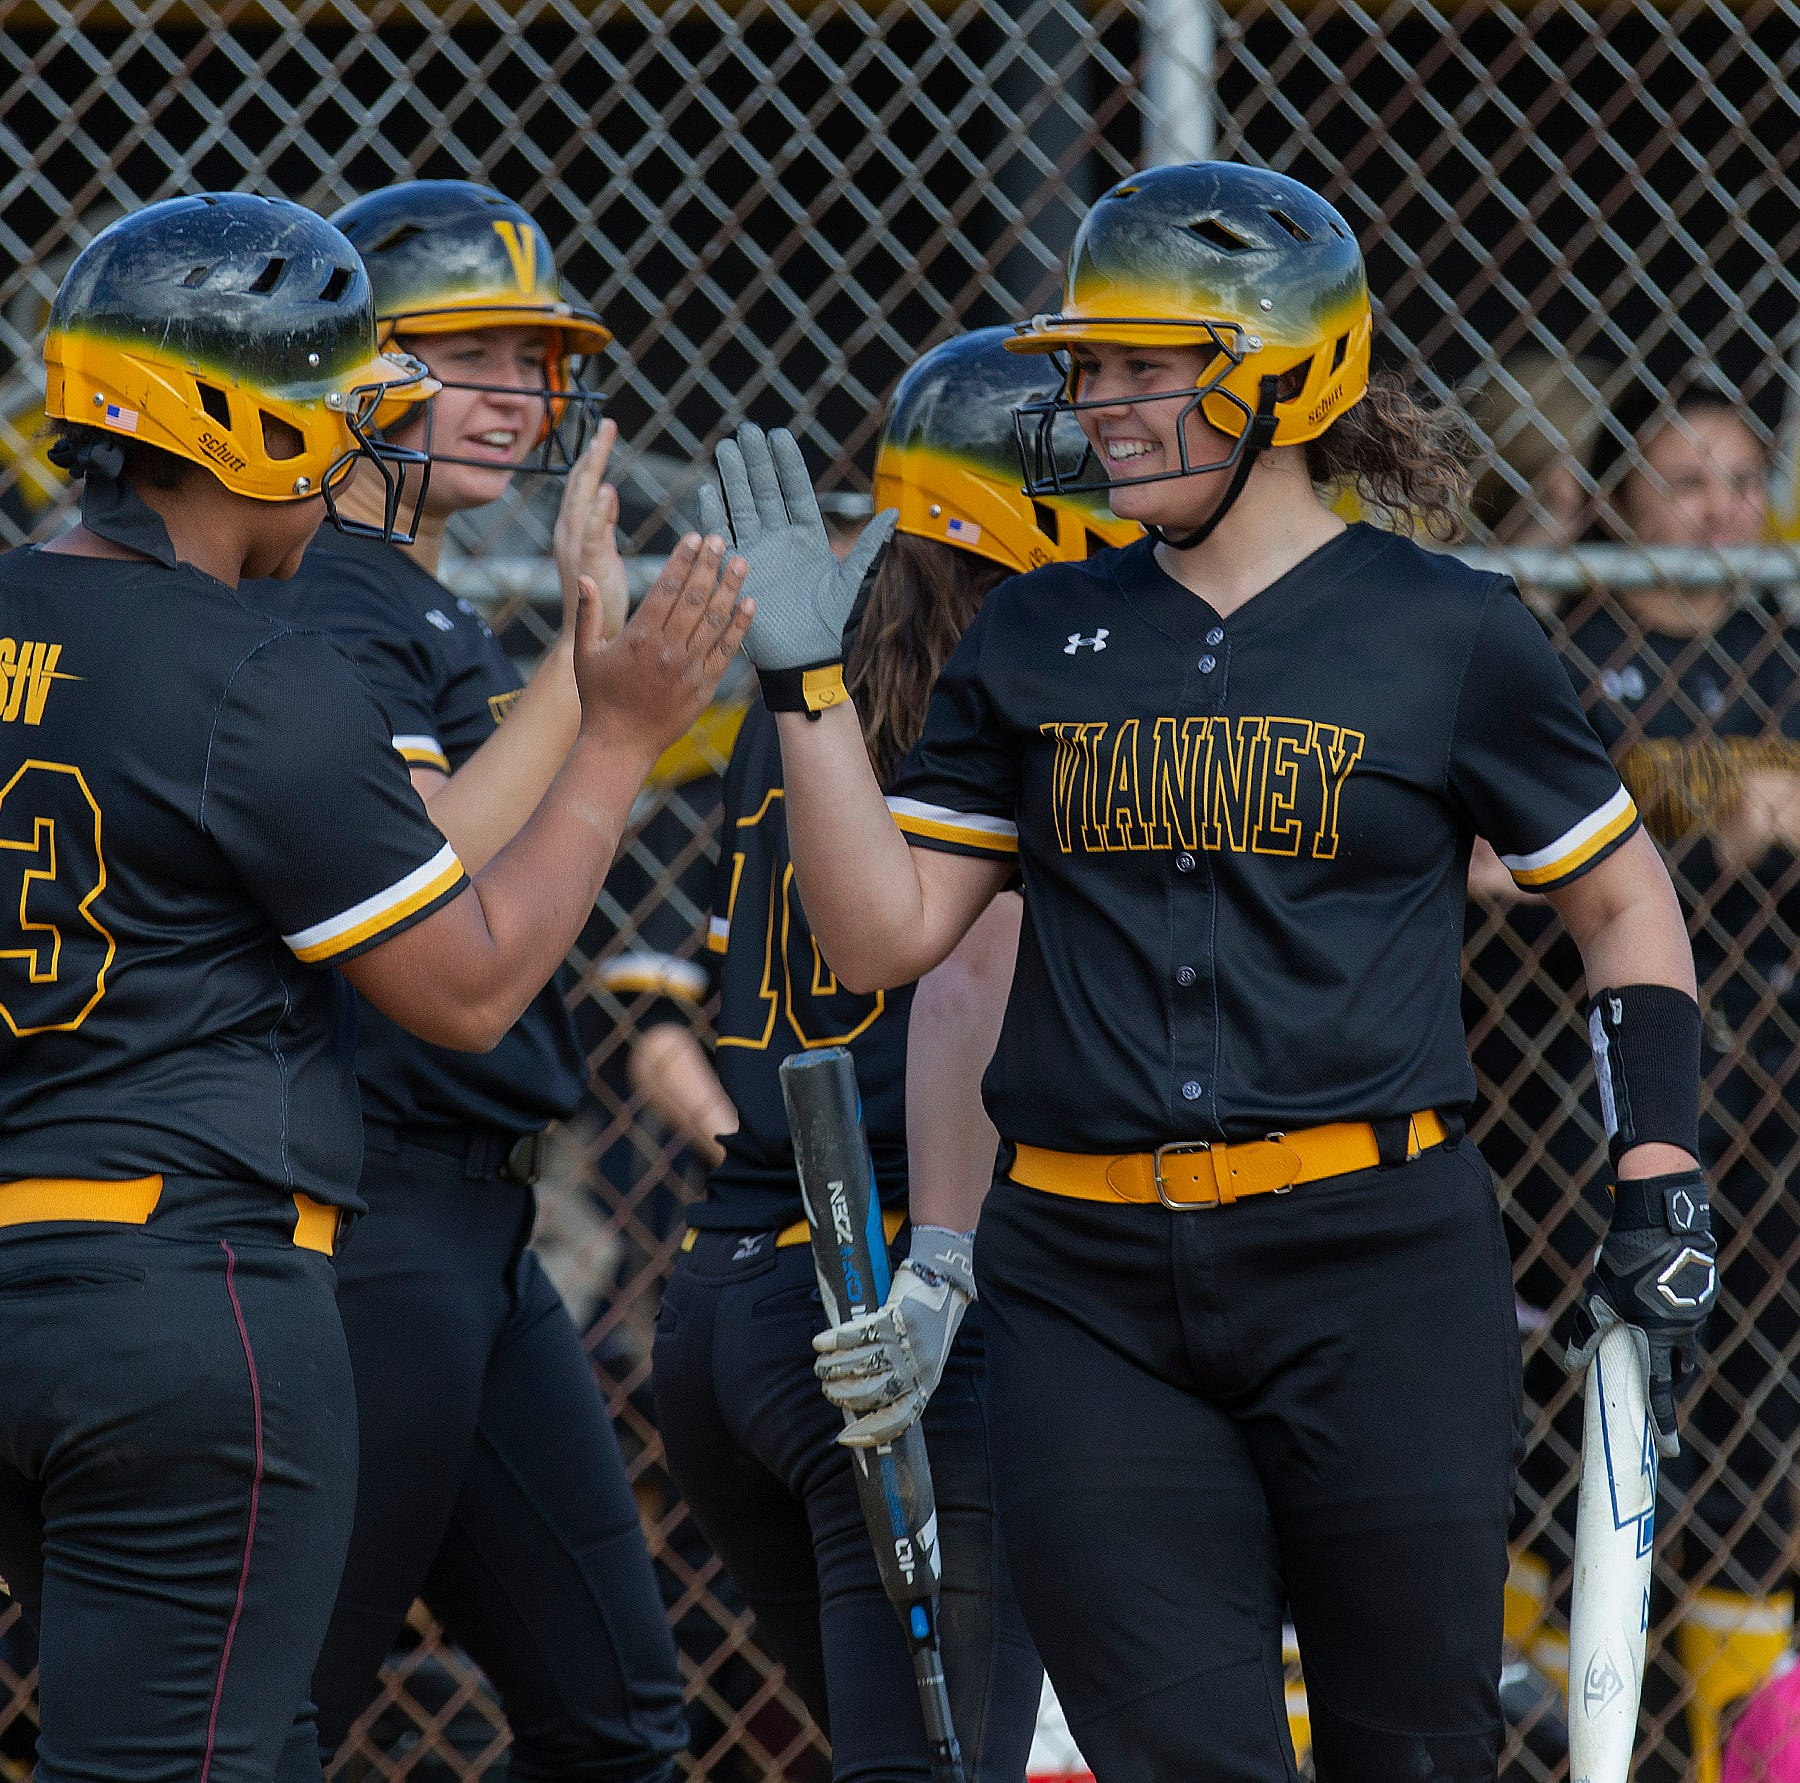 NJ softball: 2019 Shore Conference Tournament seeds released